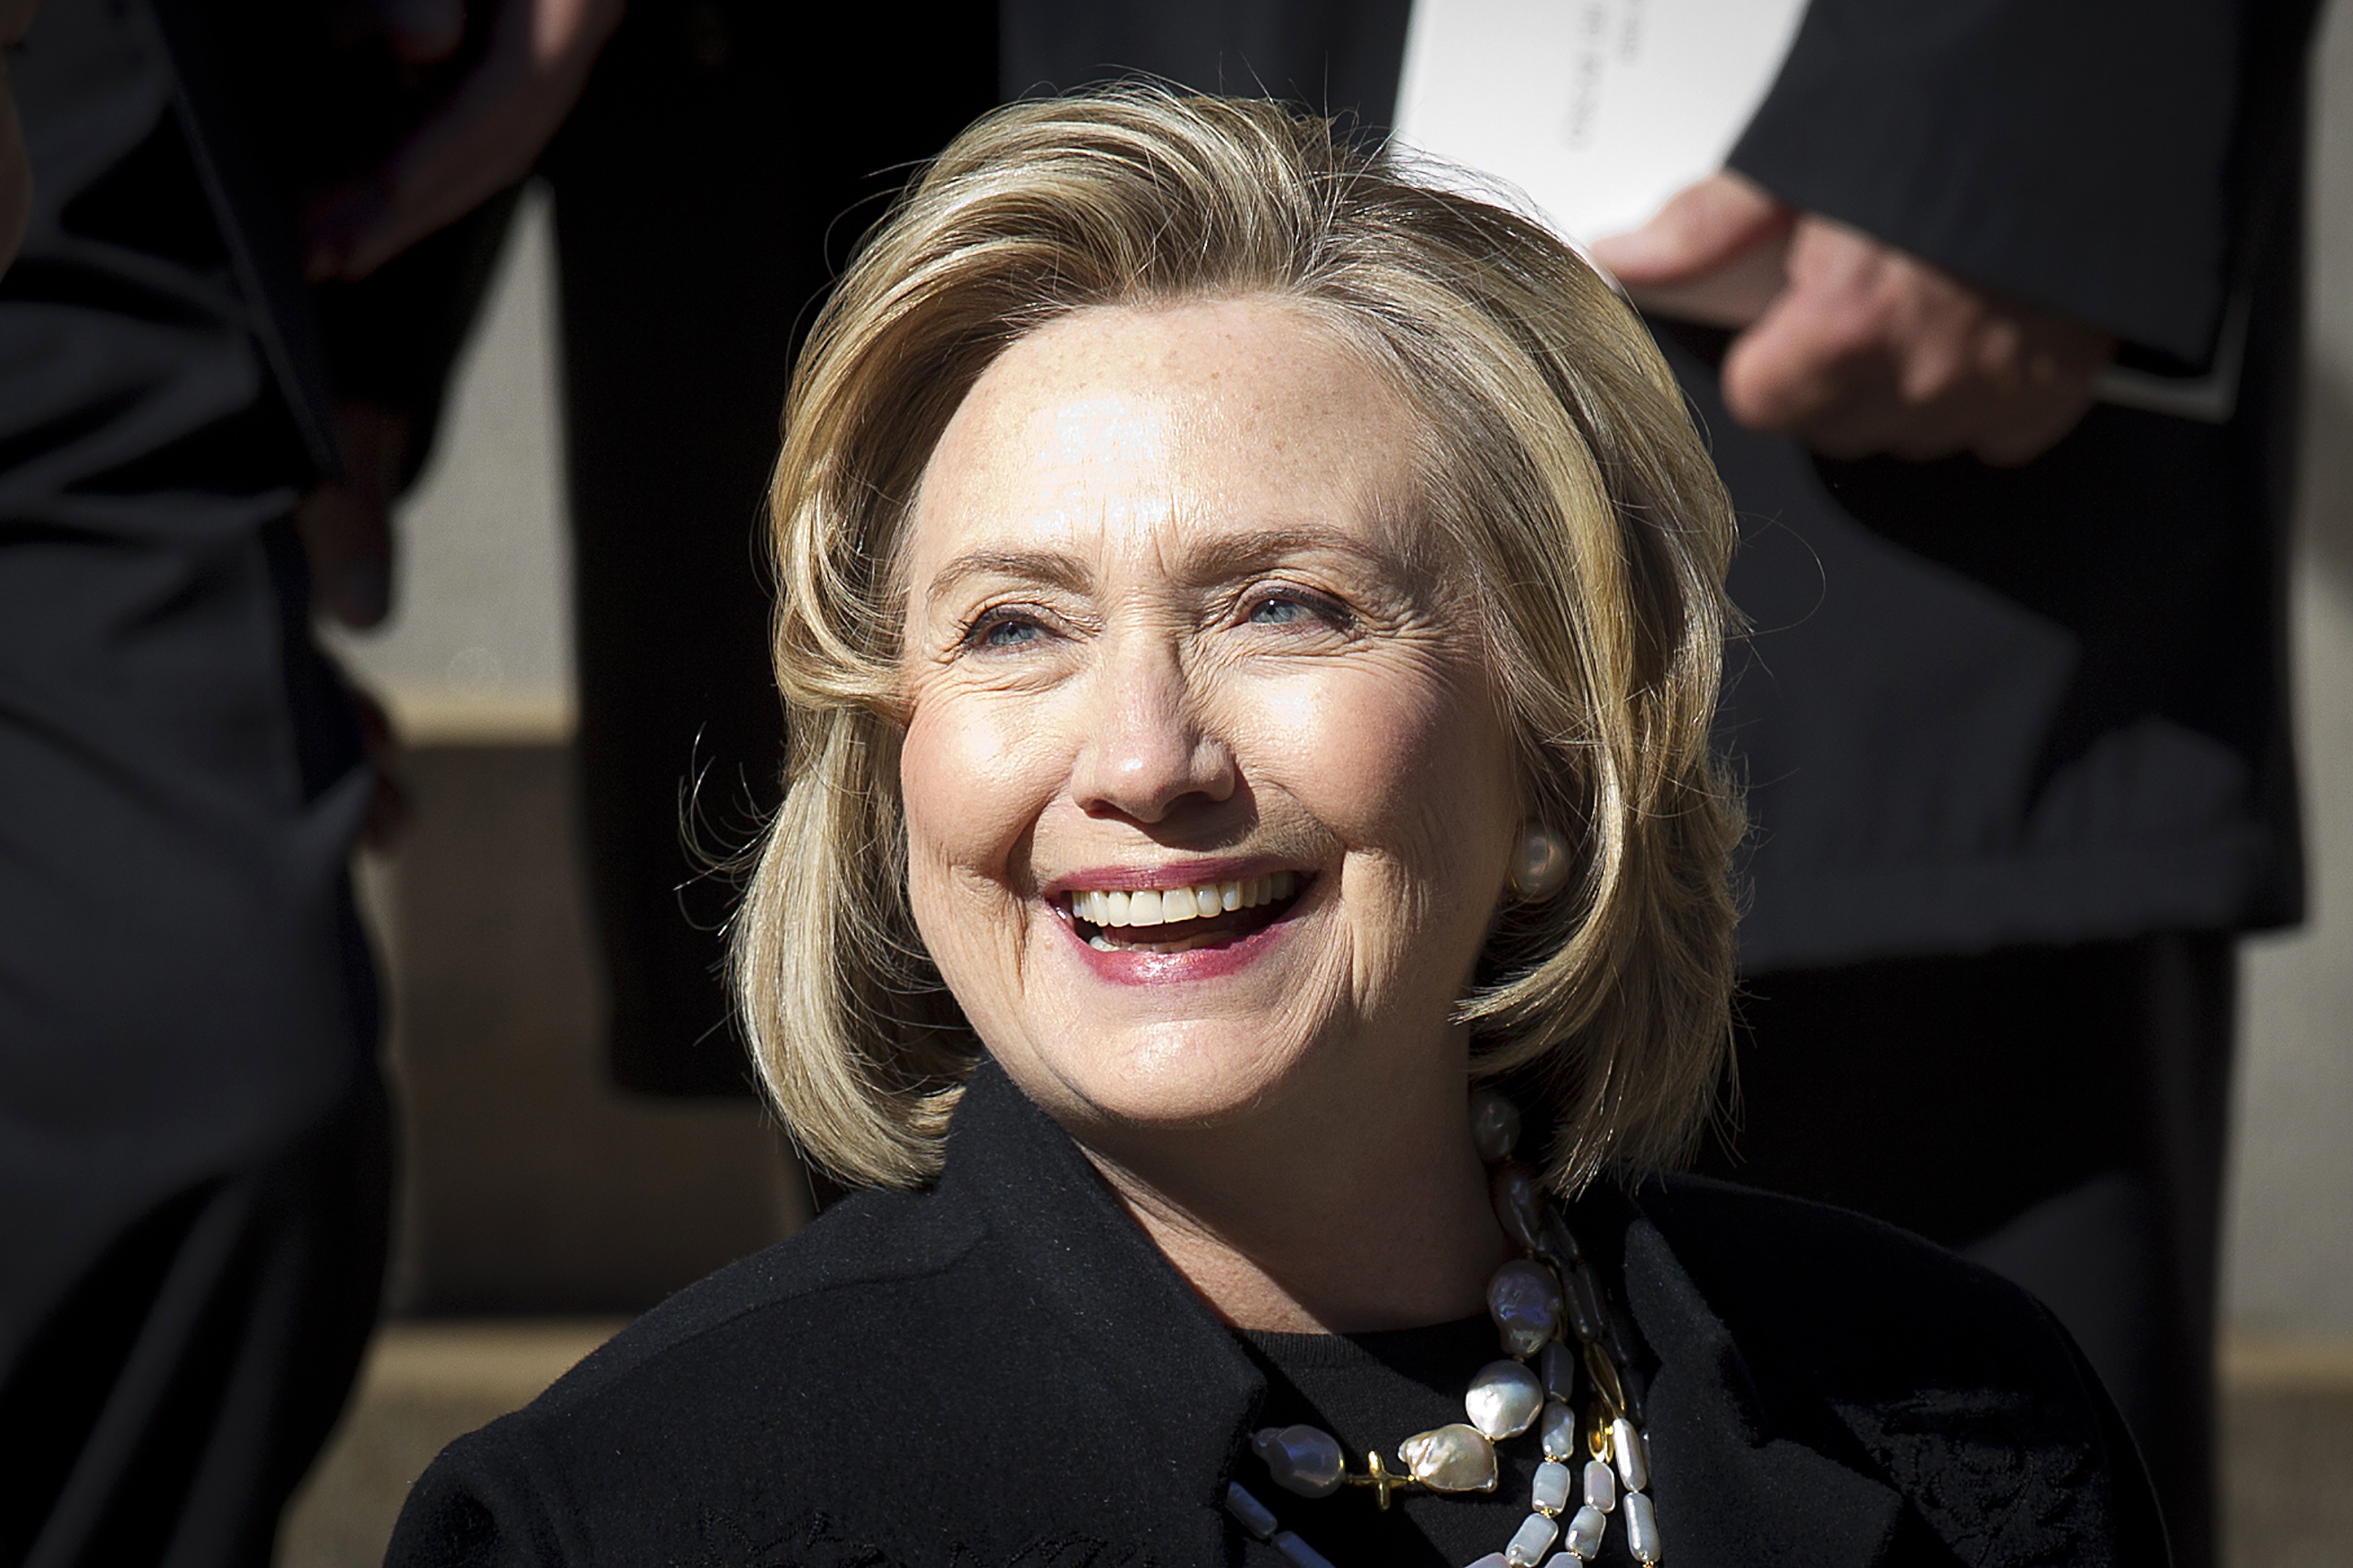 Former first lady Hillary Clinton departs St. Ignatius Loyola church following fashion designer Oscar de la Renta's memorial service in the Manhattan borough of New York November 3, 2014.